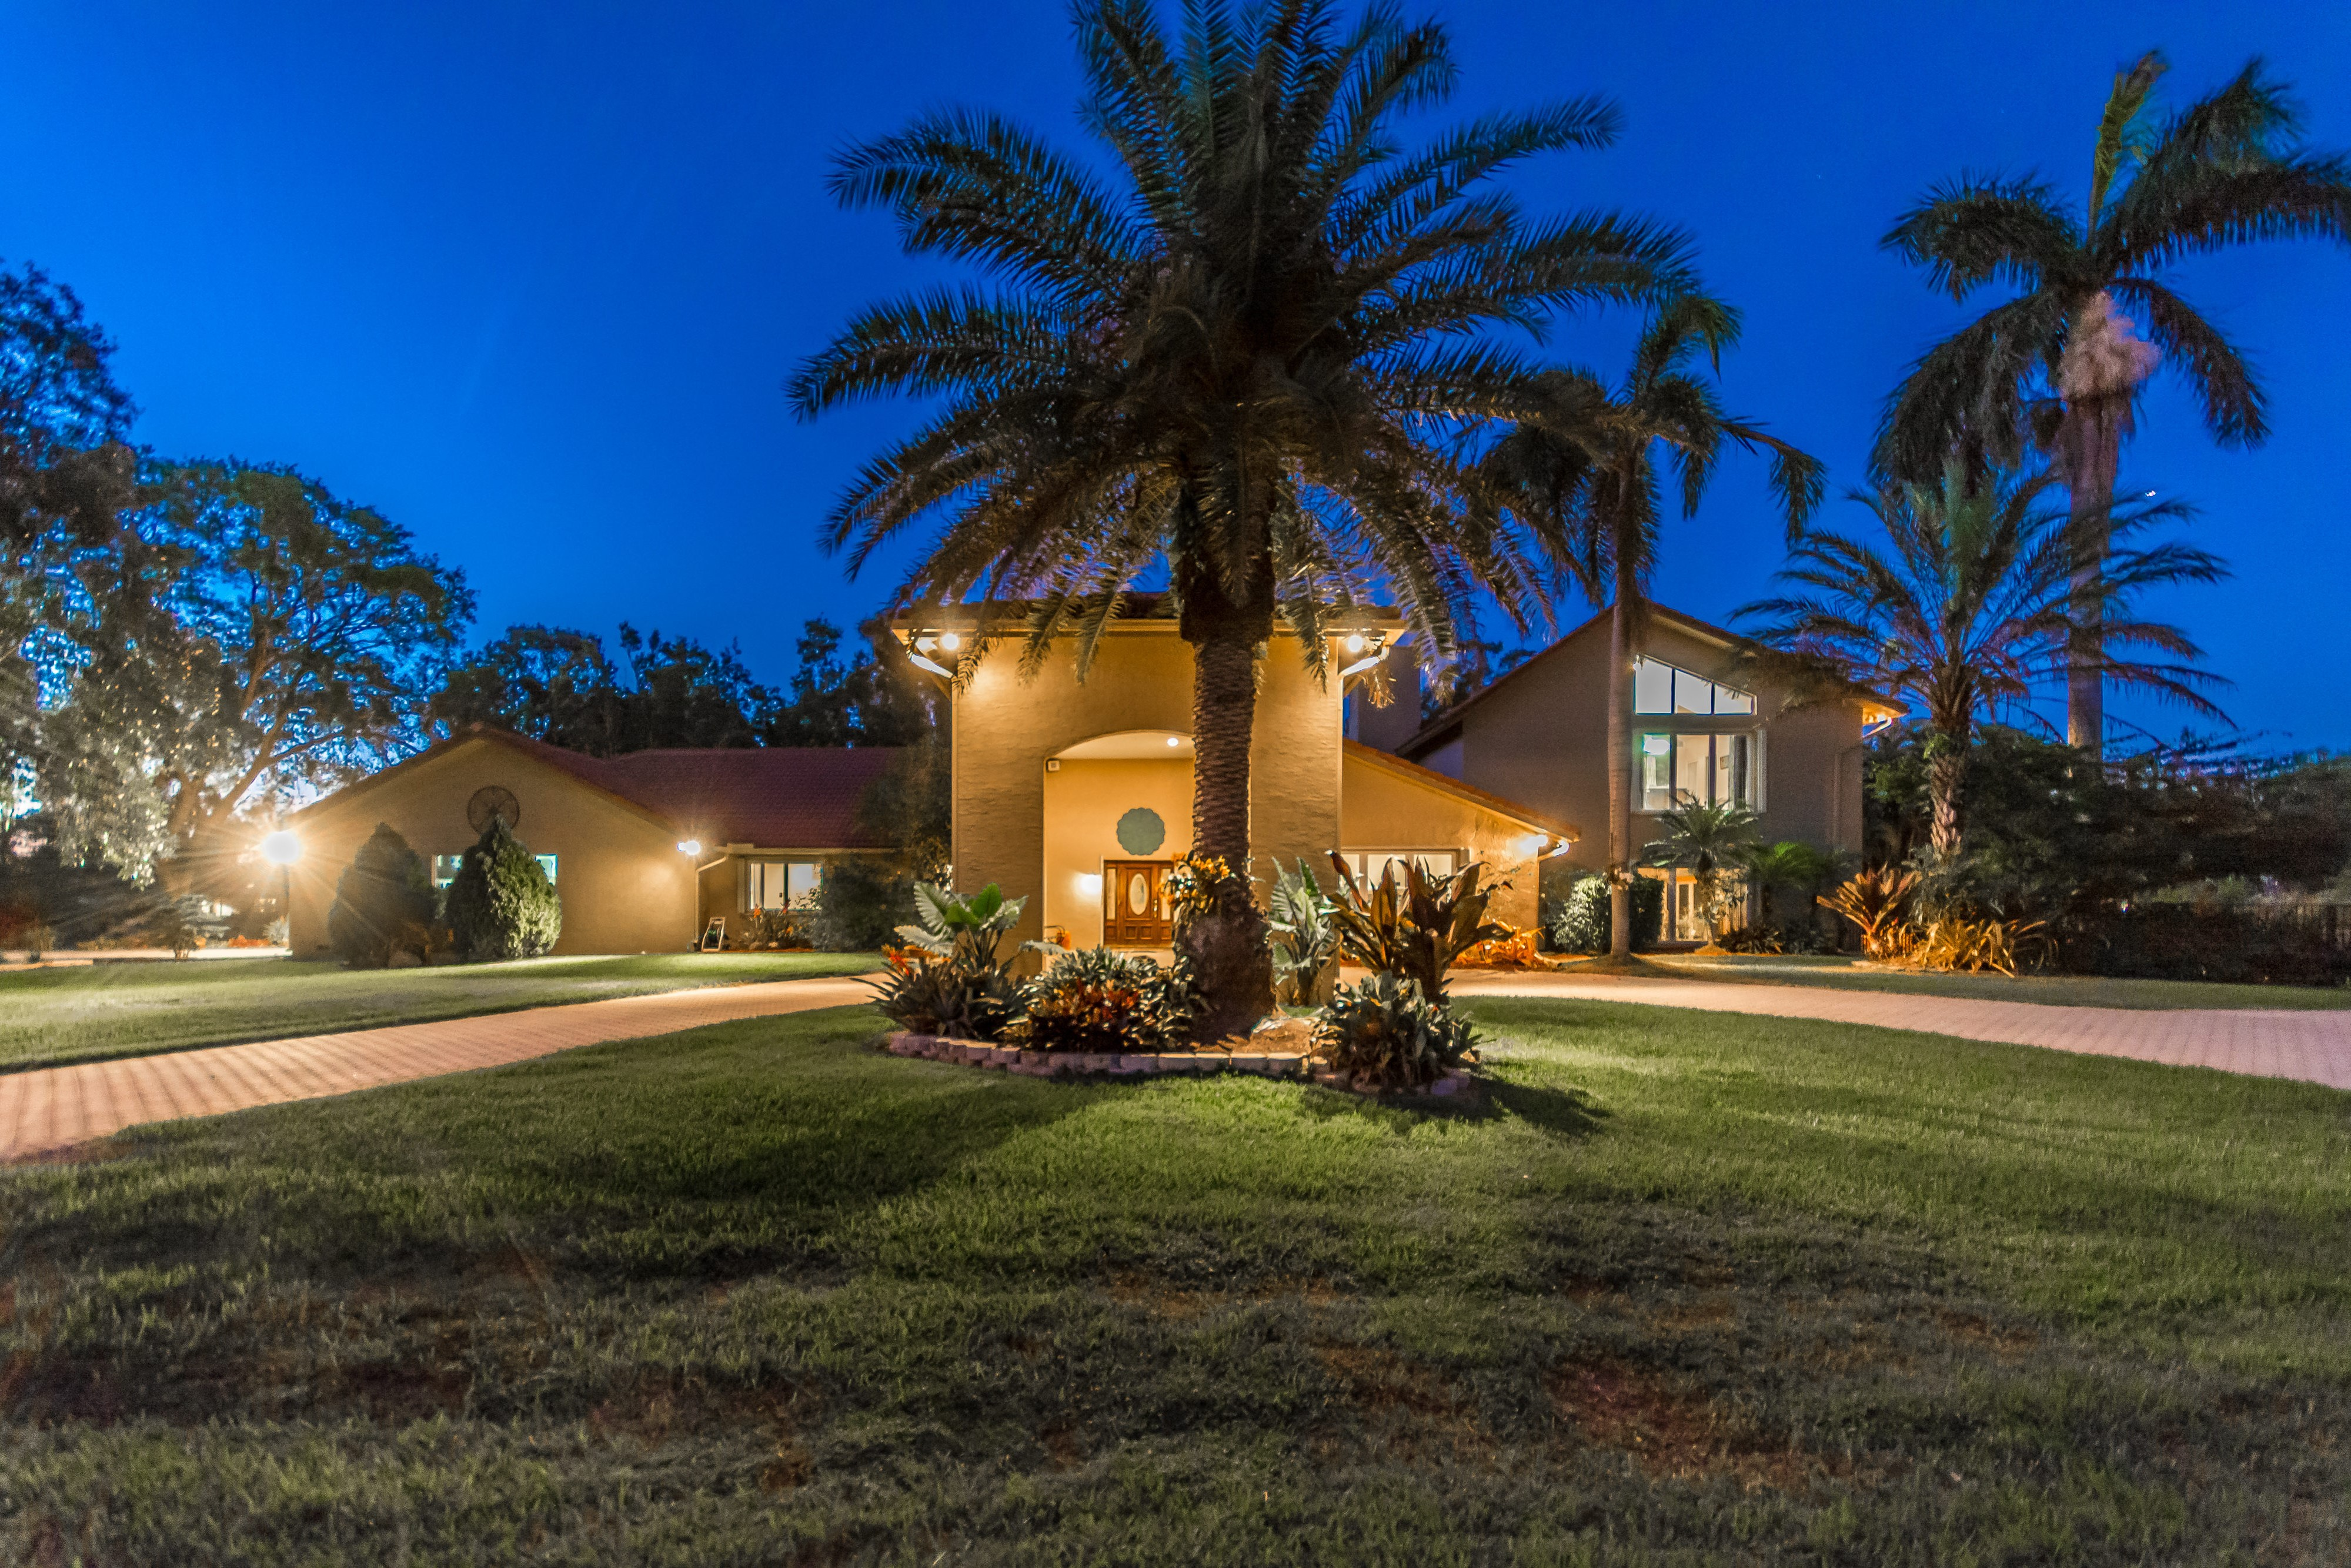 11501 NW 18th Ct Plantation FL-print-002-109-DSC 1782-4000x2667-300dpi fix.jpg